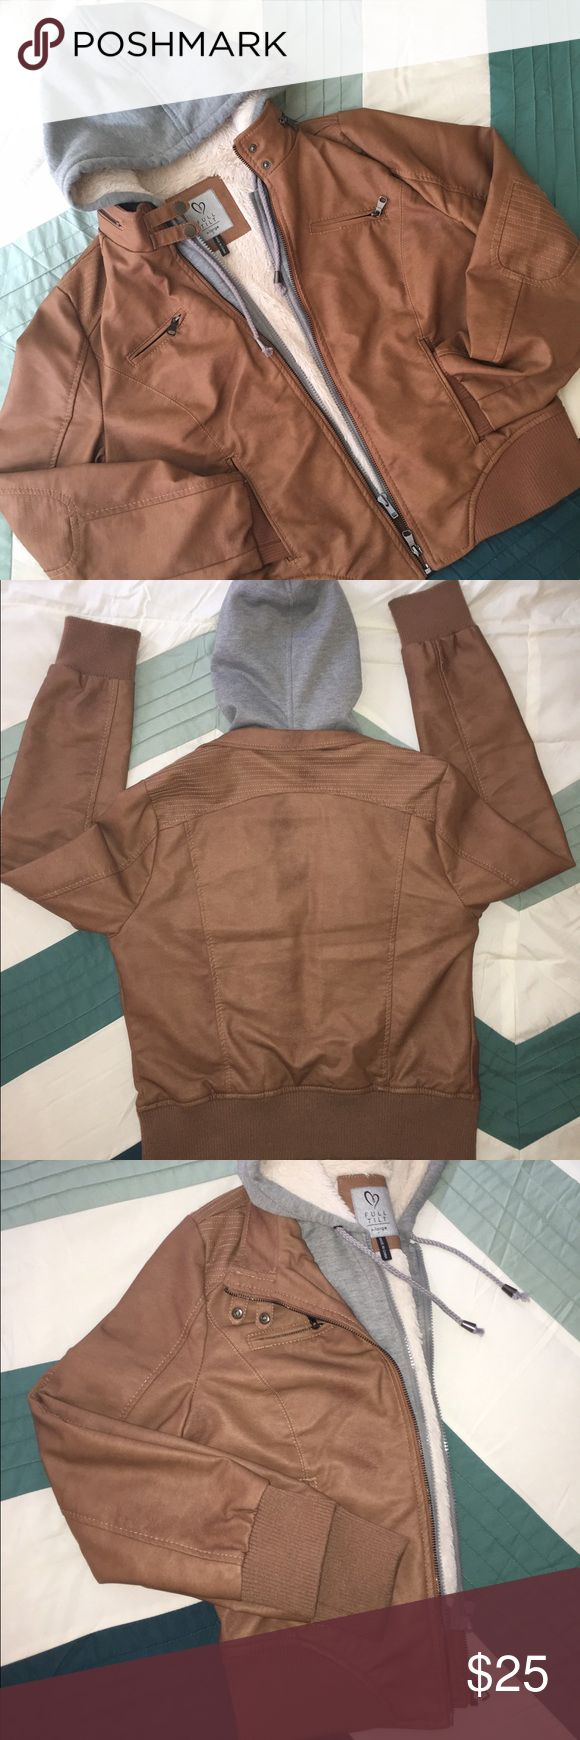 """Full Tilt - Faux Leather w/ Grey Hood Gently used. Worn probably just a handful of times. Some pilling along the bottom jacket and cuffsJunior size XL, fits like a M/L in women's. Camel color faux leather, Grey hoodie attached, lined with faux fur that is still soft and fuzzy! Measurements: 26""""Arm/21"""" Bust/21 1/2"""" Shoulder to bottom of jacket Full Tilt Jackets & Coats"""